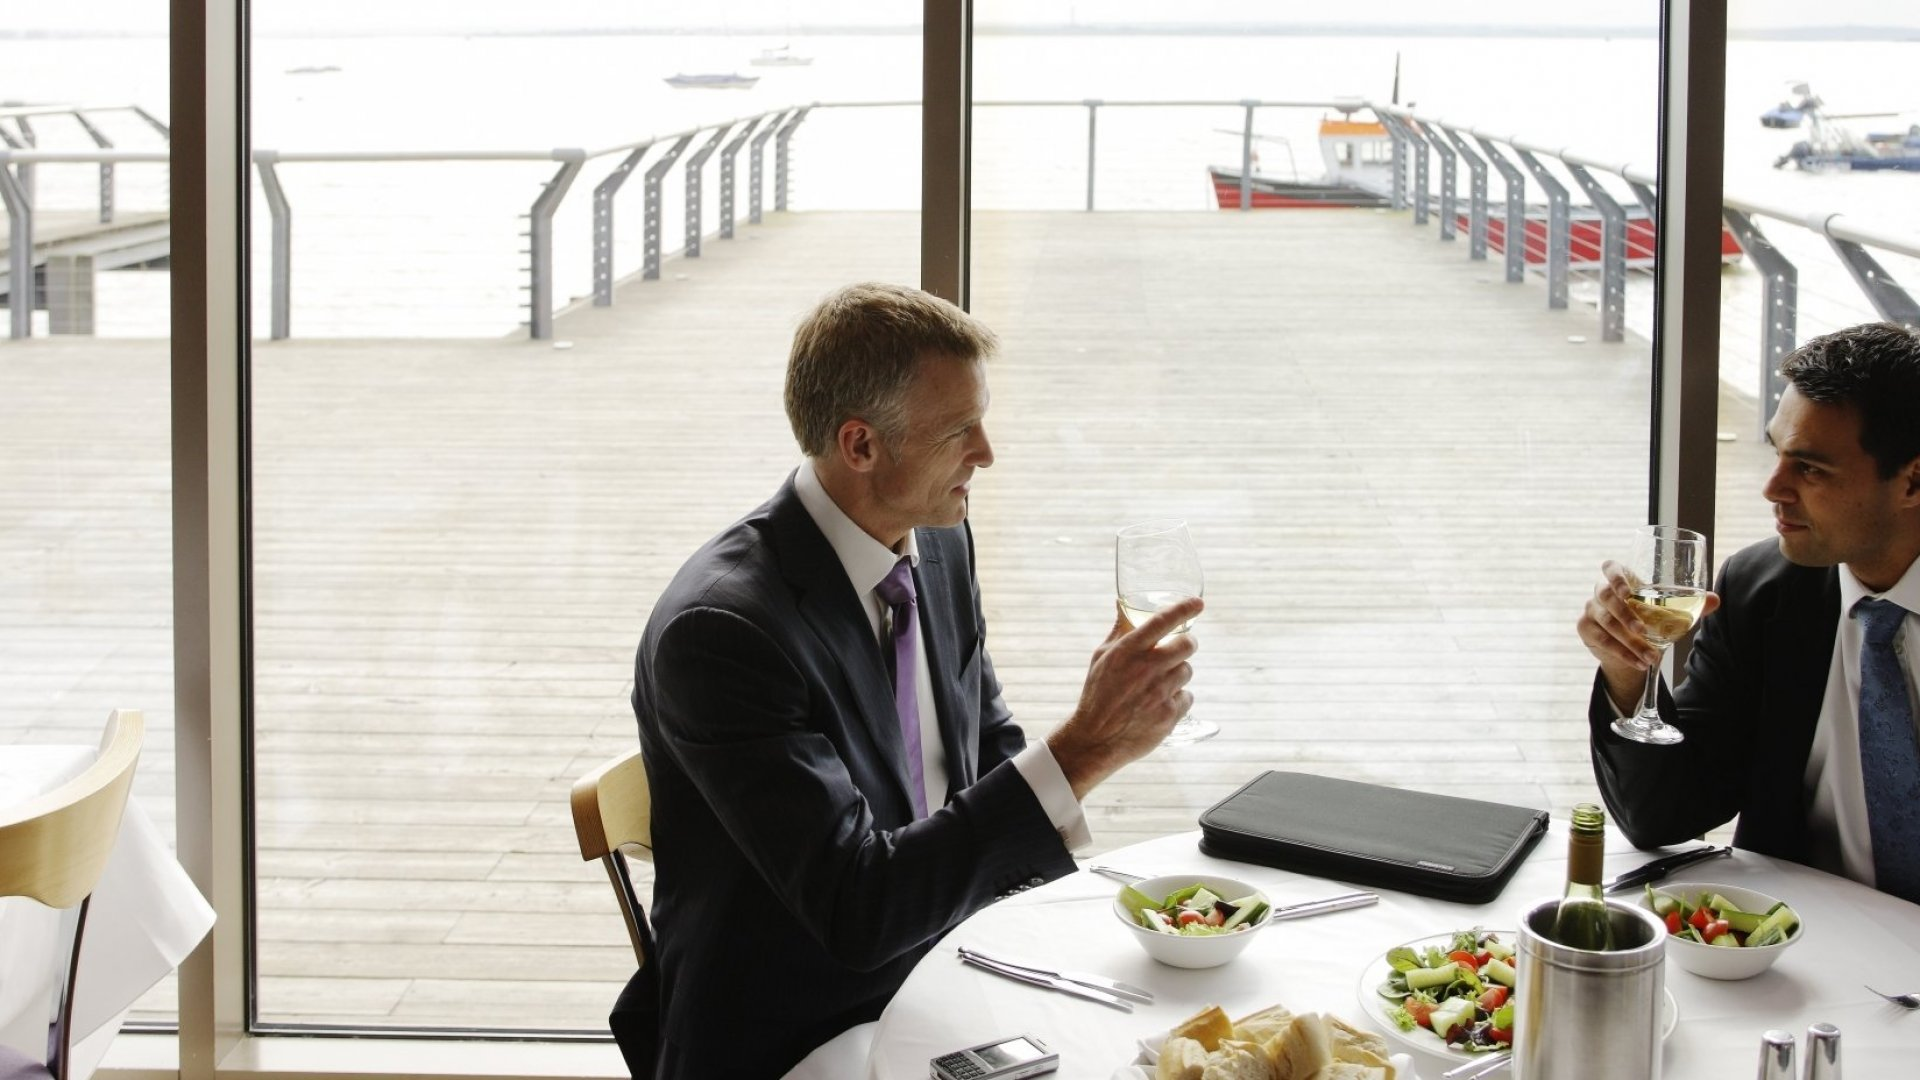 How to Make the Most of a Networking Lunch